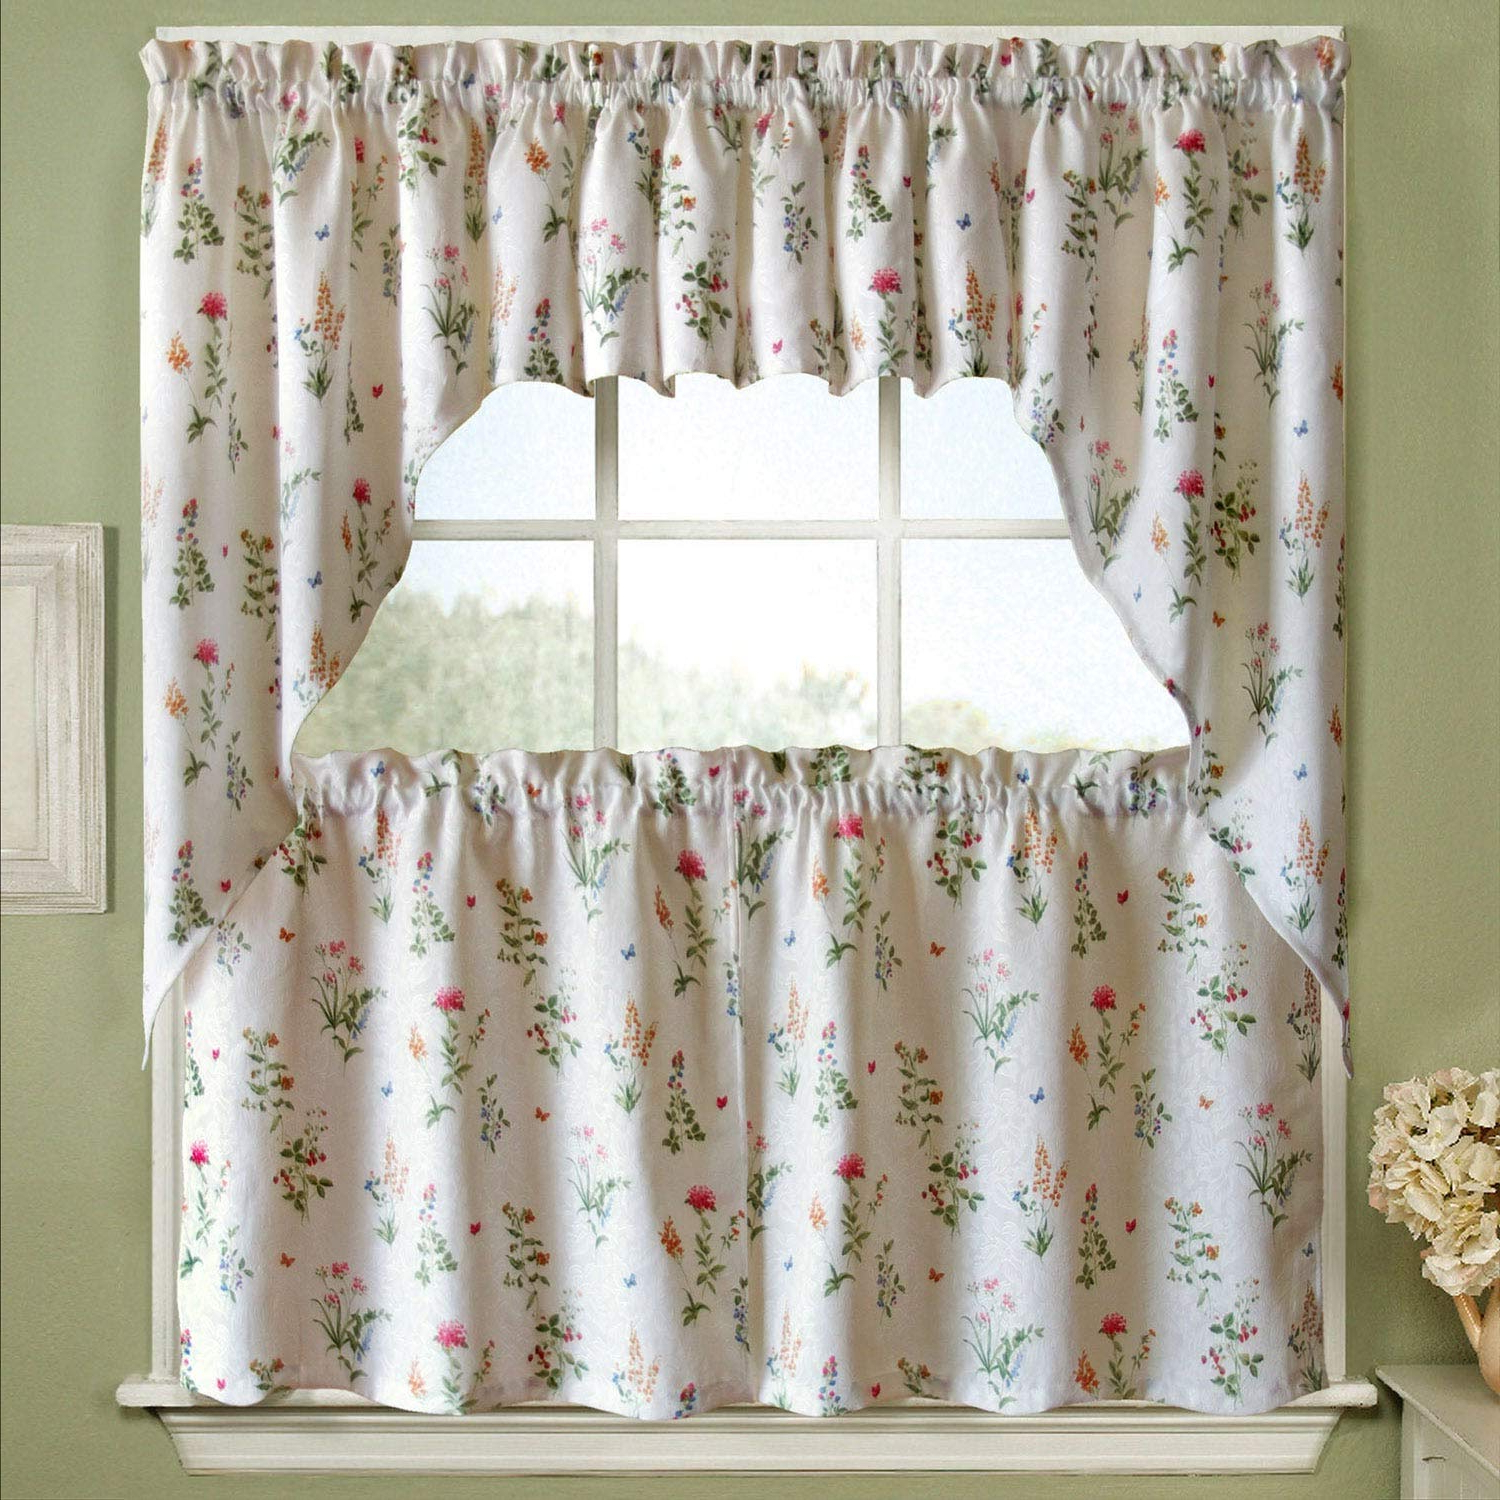 Traditional Two Piece Tailored Tier And Valance Window Curtains For Most Popular Amazon: Bed Bath N More Vibrant Floral Garden Motif (View 19 of 20)